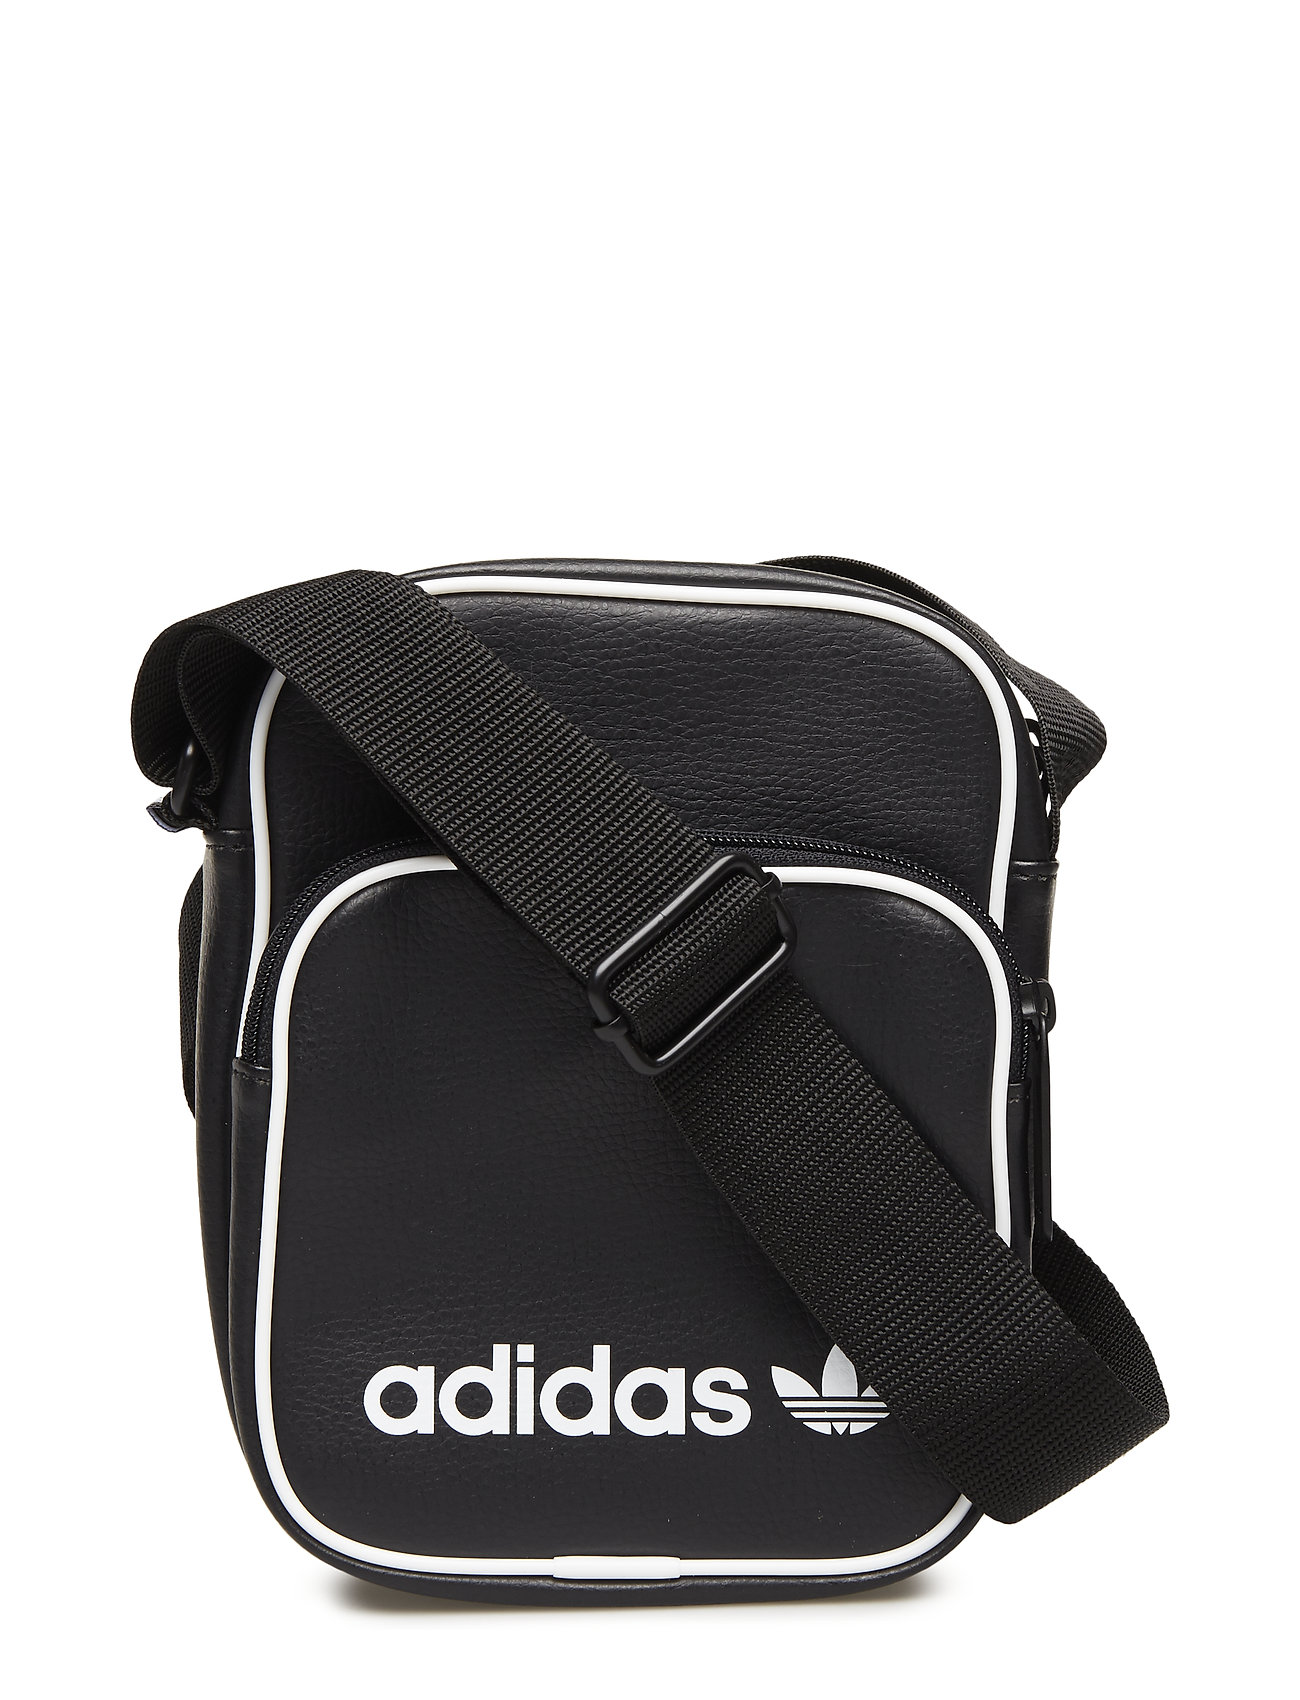 99aaa0d59916f Mini Bag Vint (Black) (19.57 €) - adidas Originals - | Boozt.com